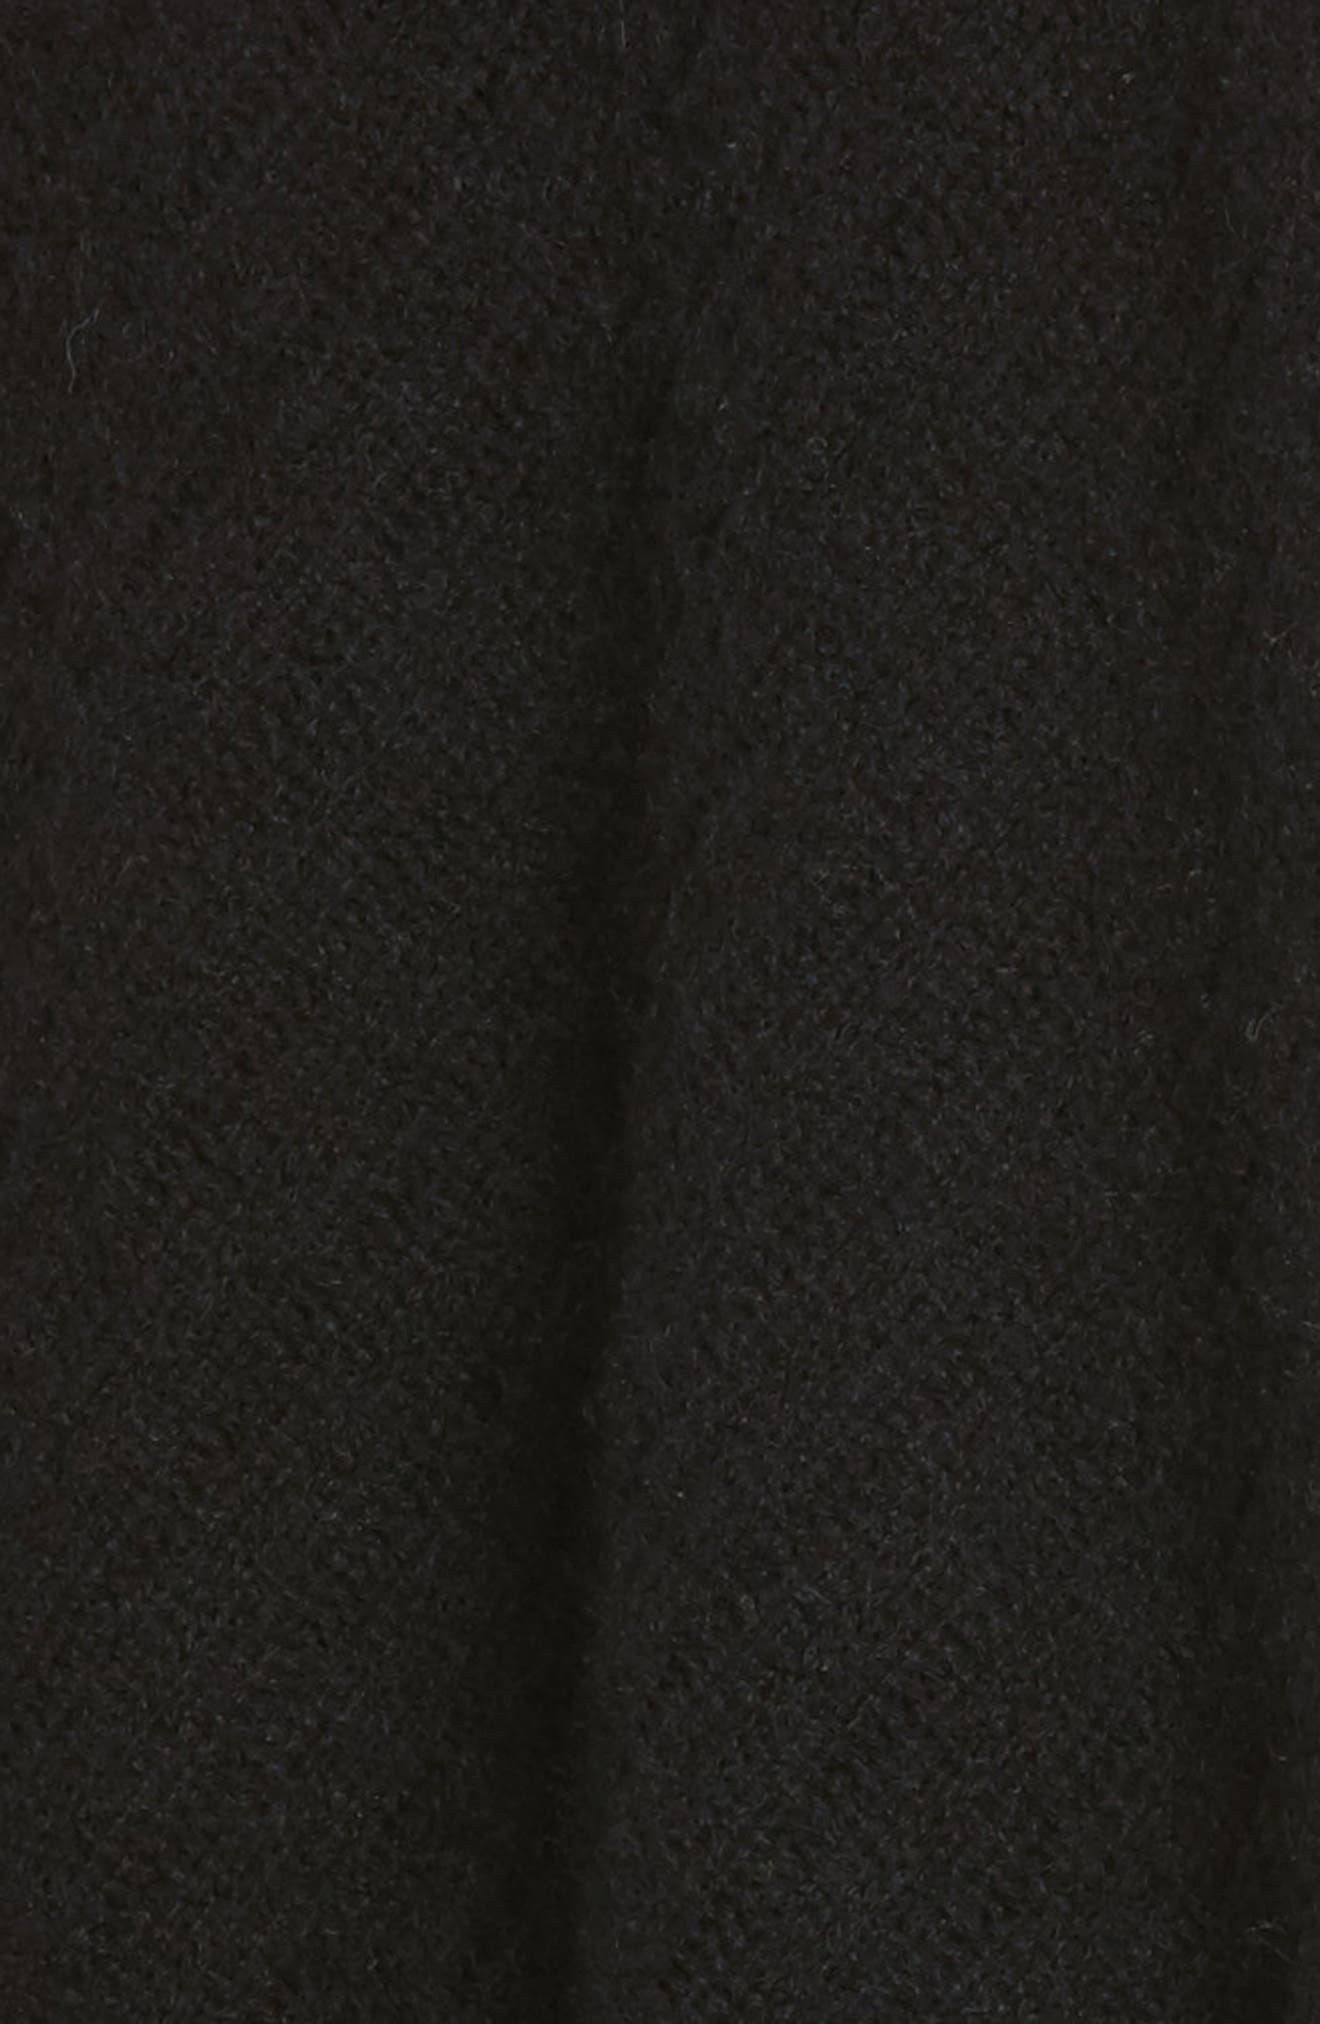 Cashmere Wrap,                             Alternate thumbnail 5, color,                             001